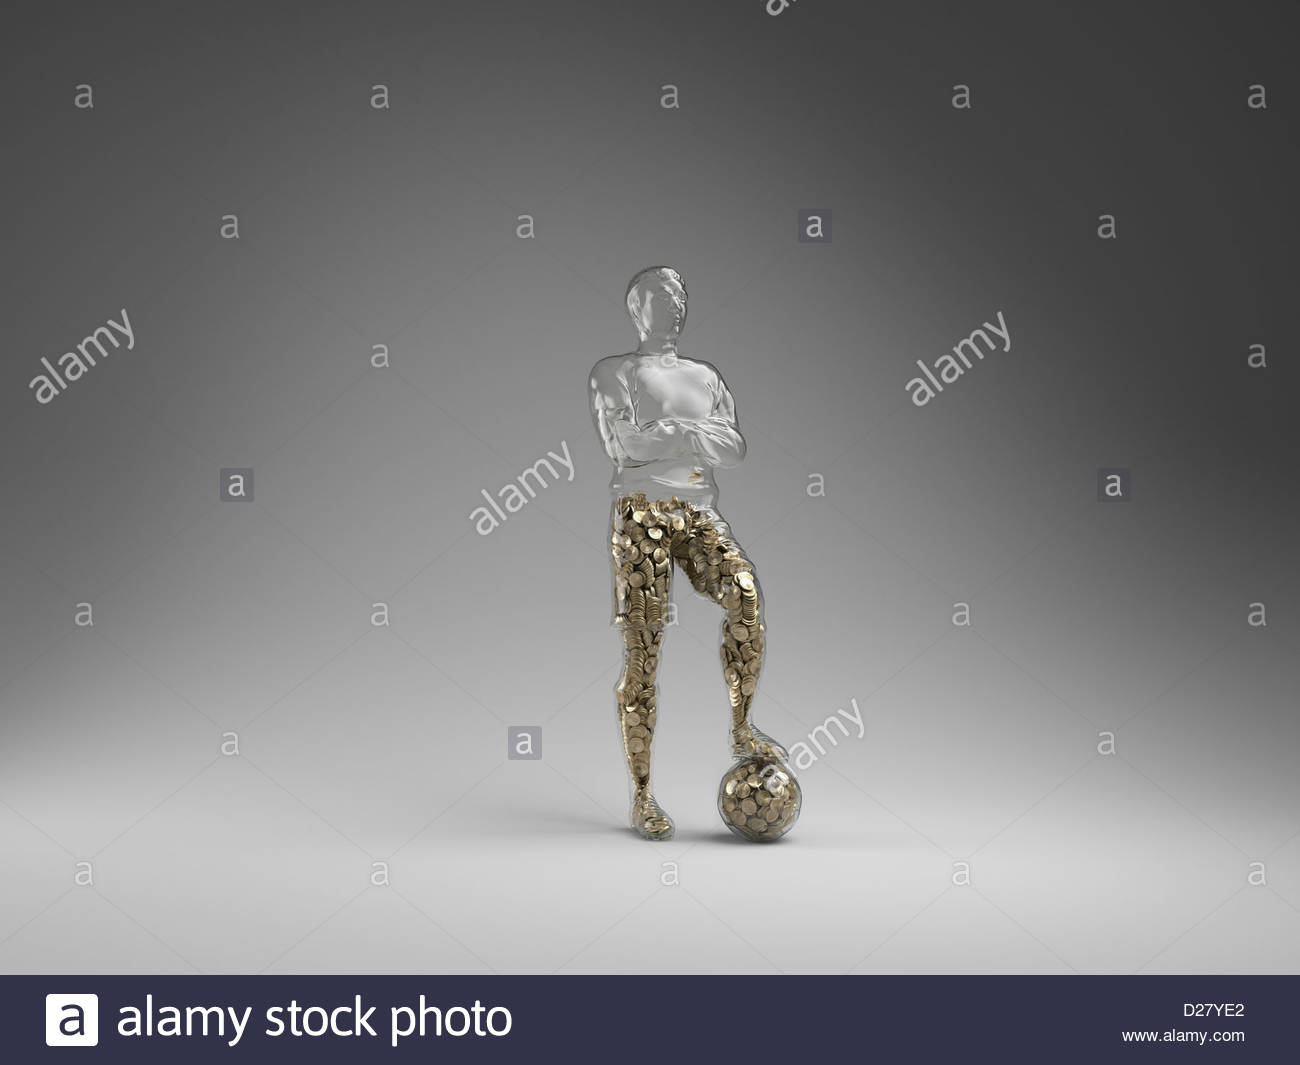 Coins filling half of hollow soccer player - Stock Image